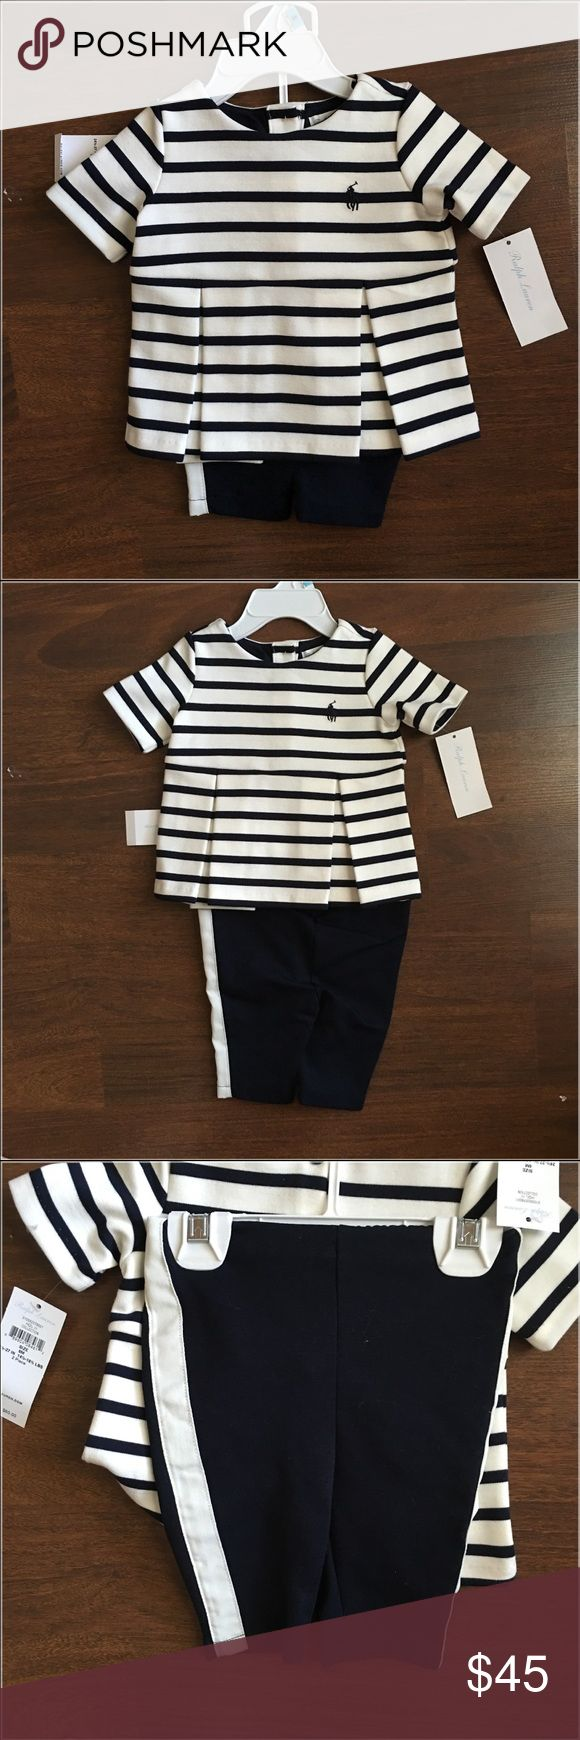 RALPH LAUREN PANT SUIT SET 6 MONTHS This elegant little pant set is so adorable never been worn new with tags navy and white Ralph Lauren Matching Sets